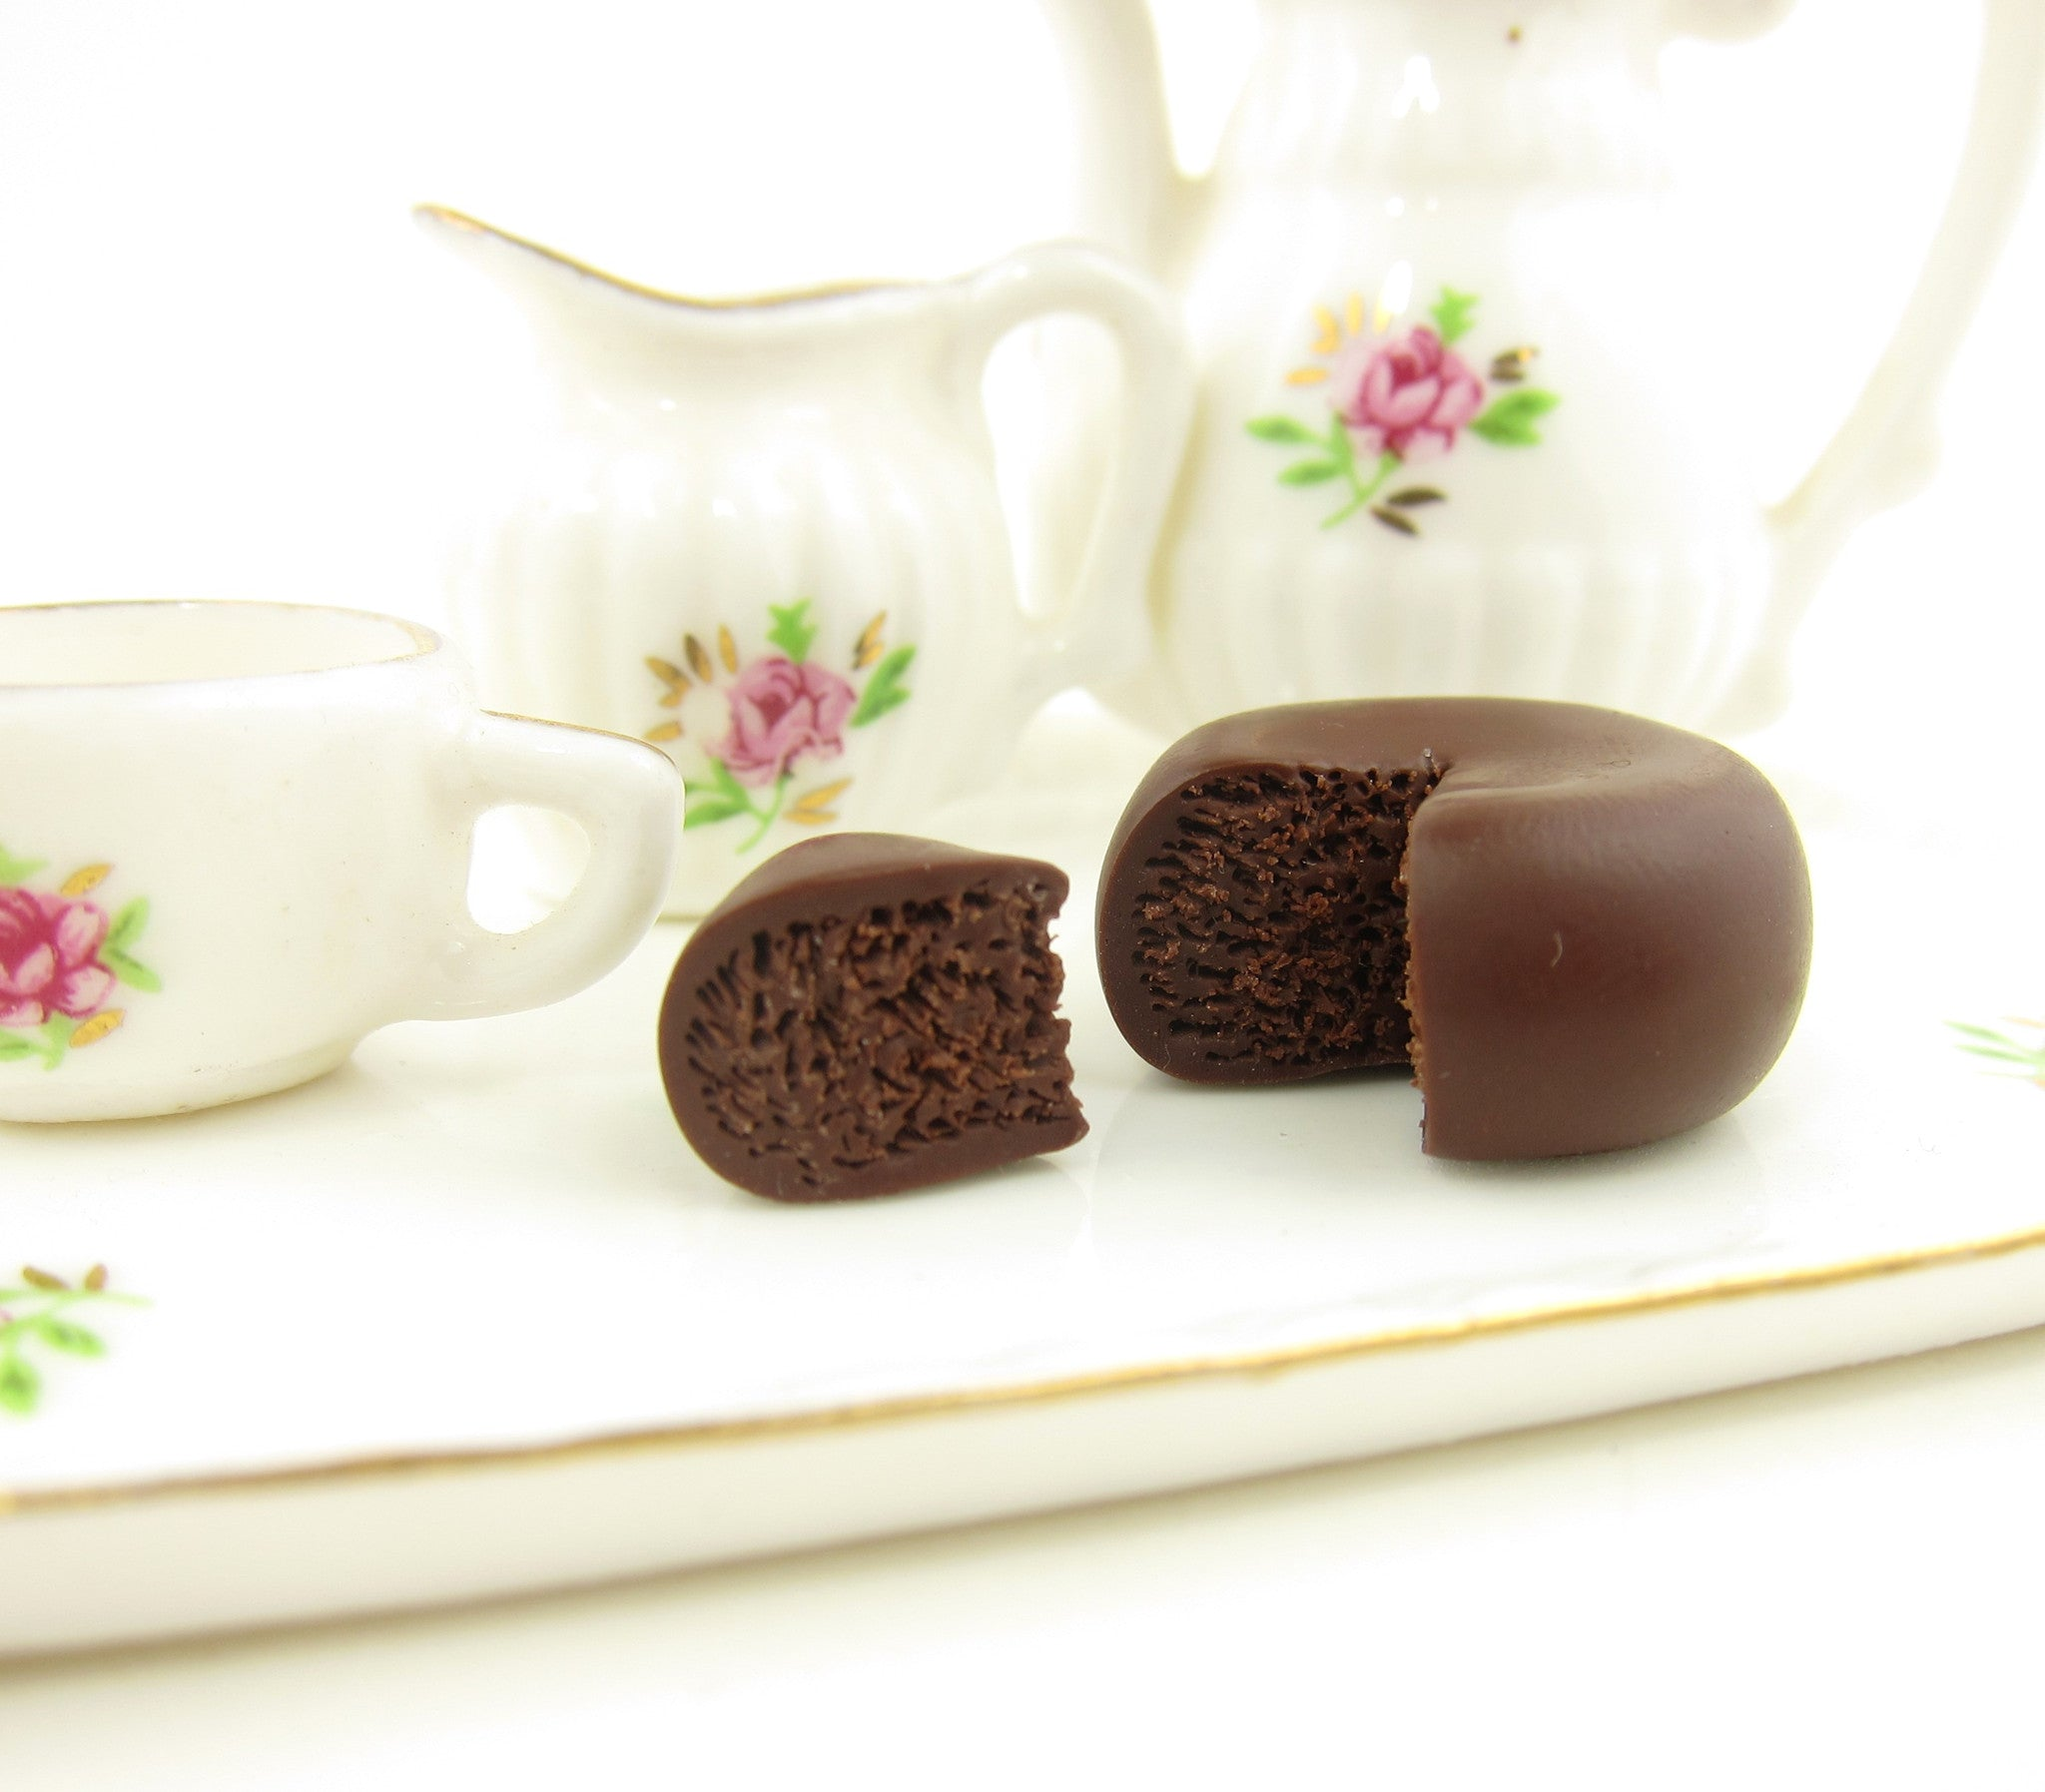 Polymer Clay Cake Chocolate Ganache Dollhouse Miniature 1 Inch Scale Brown Eyed Rose